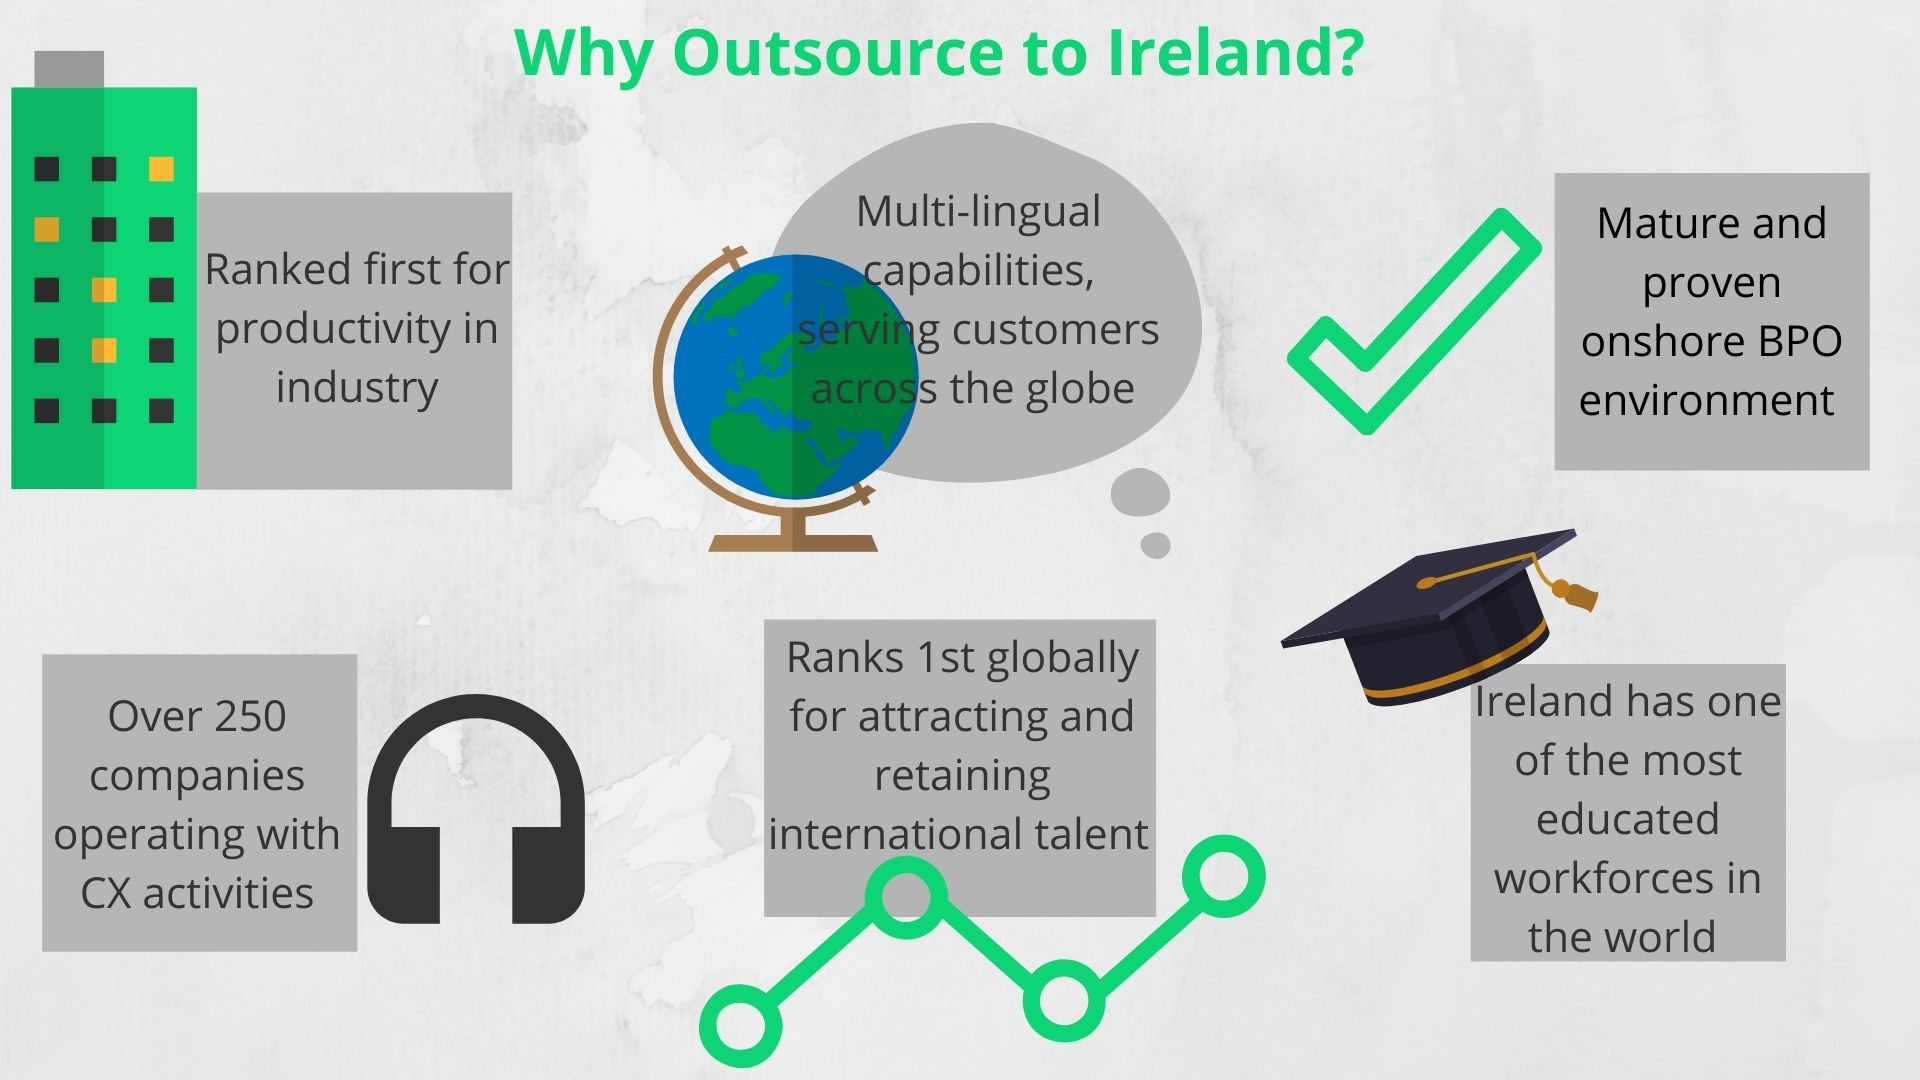 Why Outsource to Ireland?